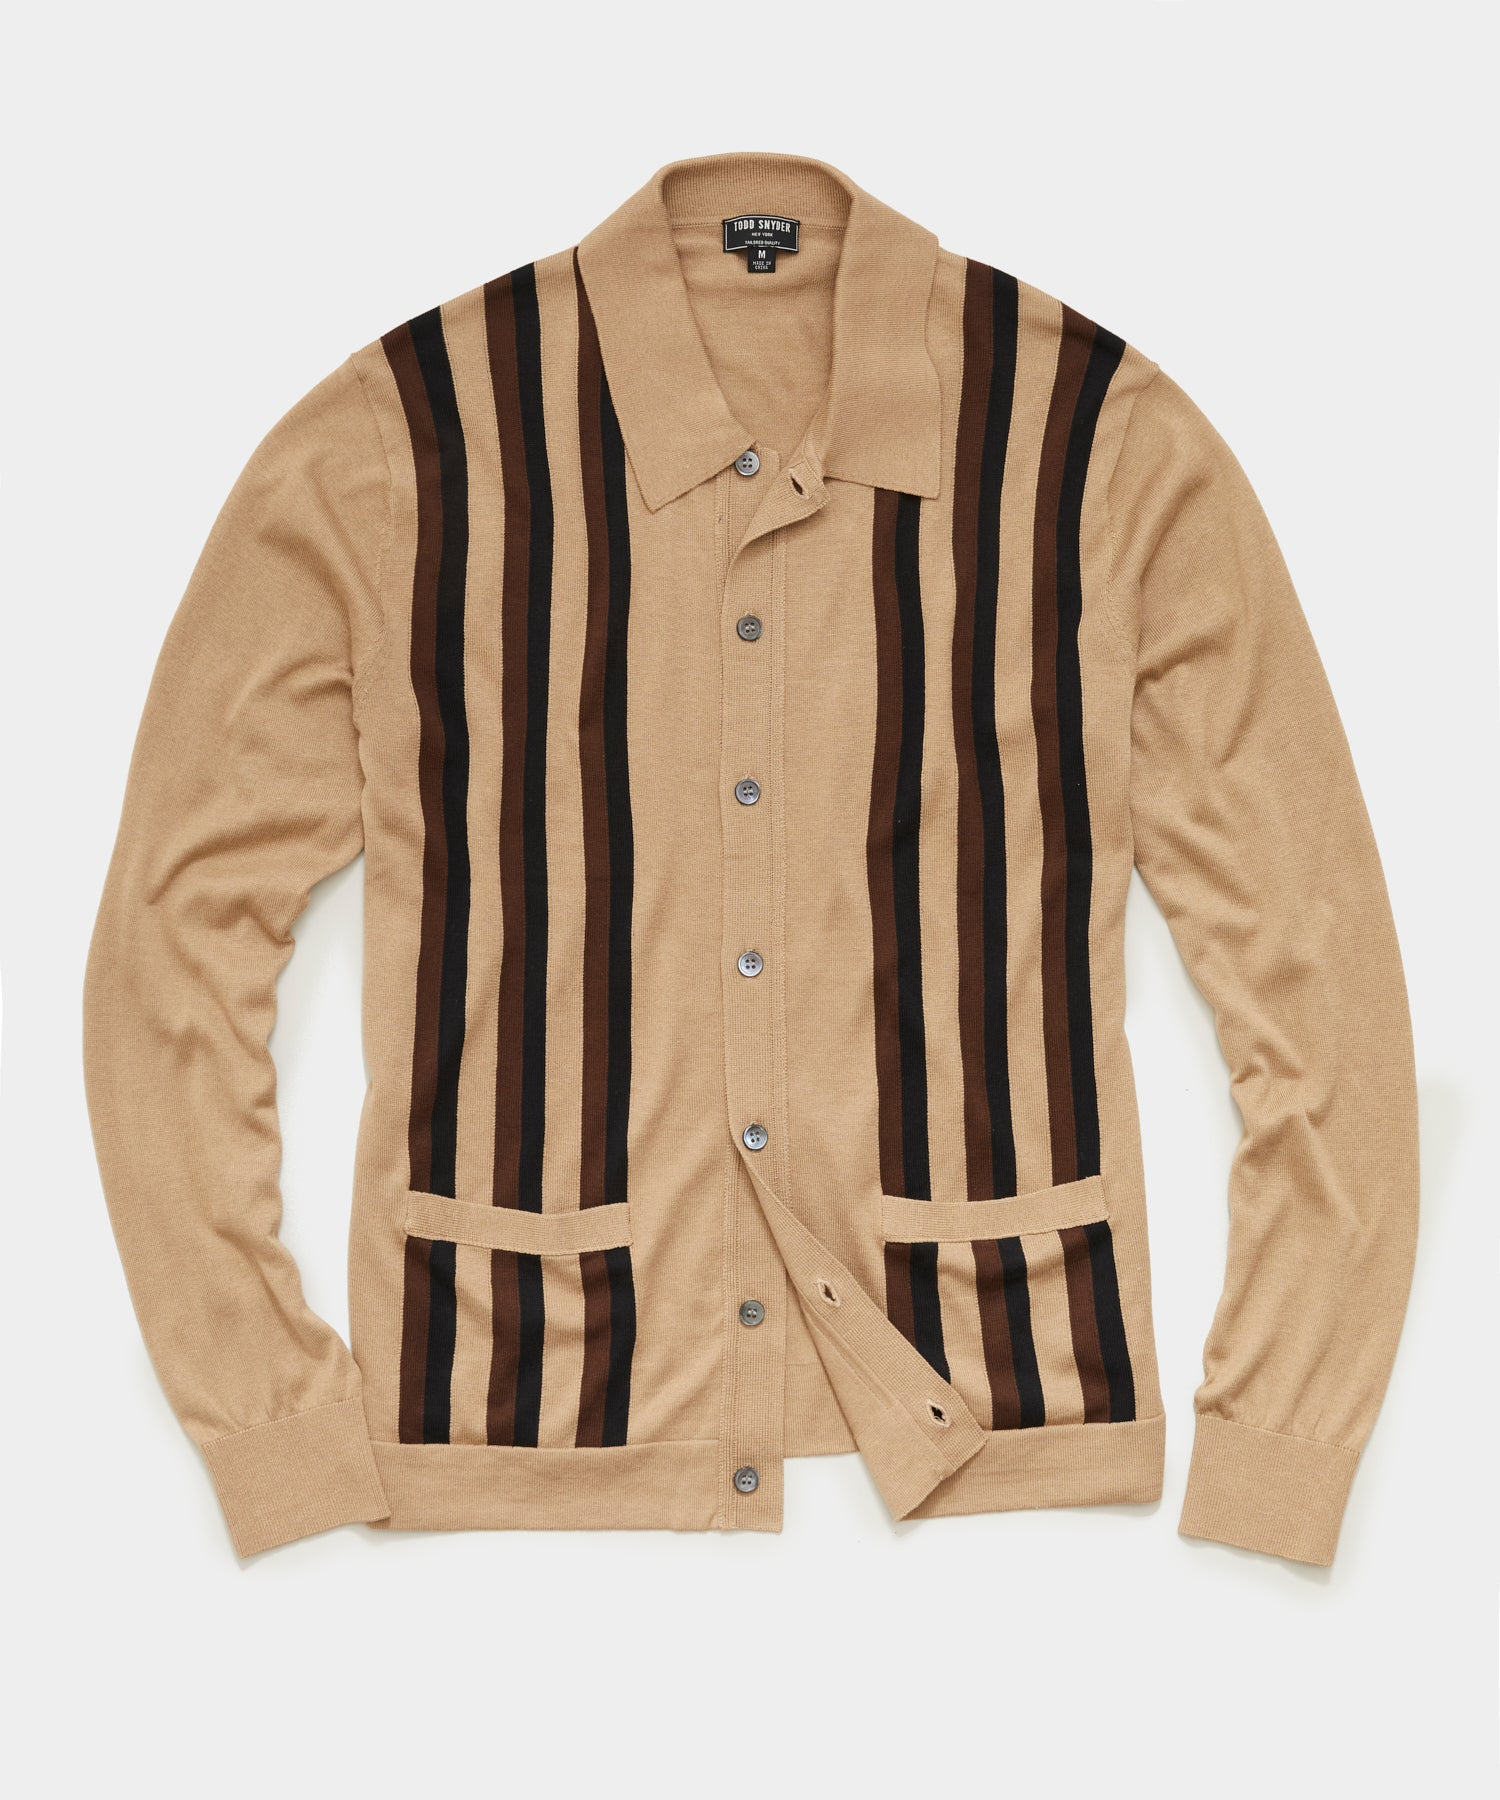 Long Sleeve Striped Button Down Sweater Polo in Khaki